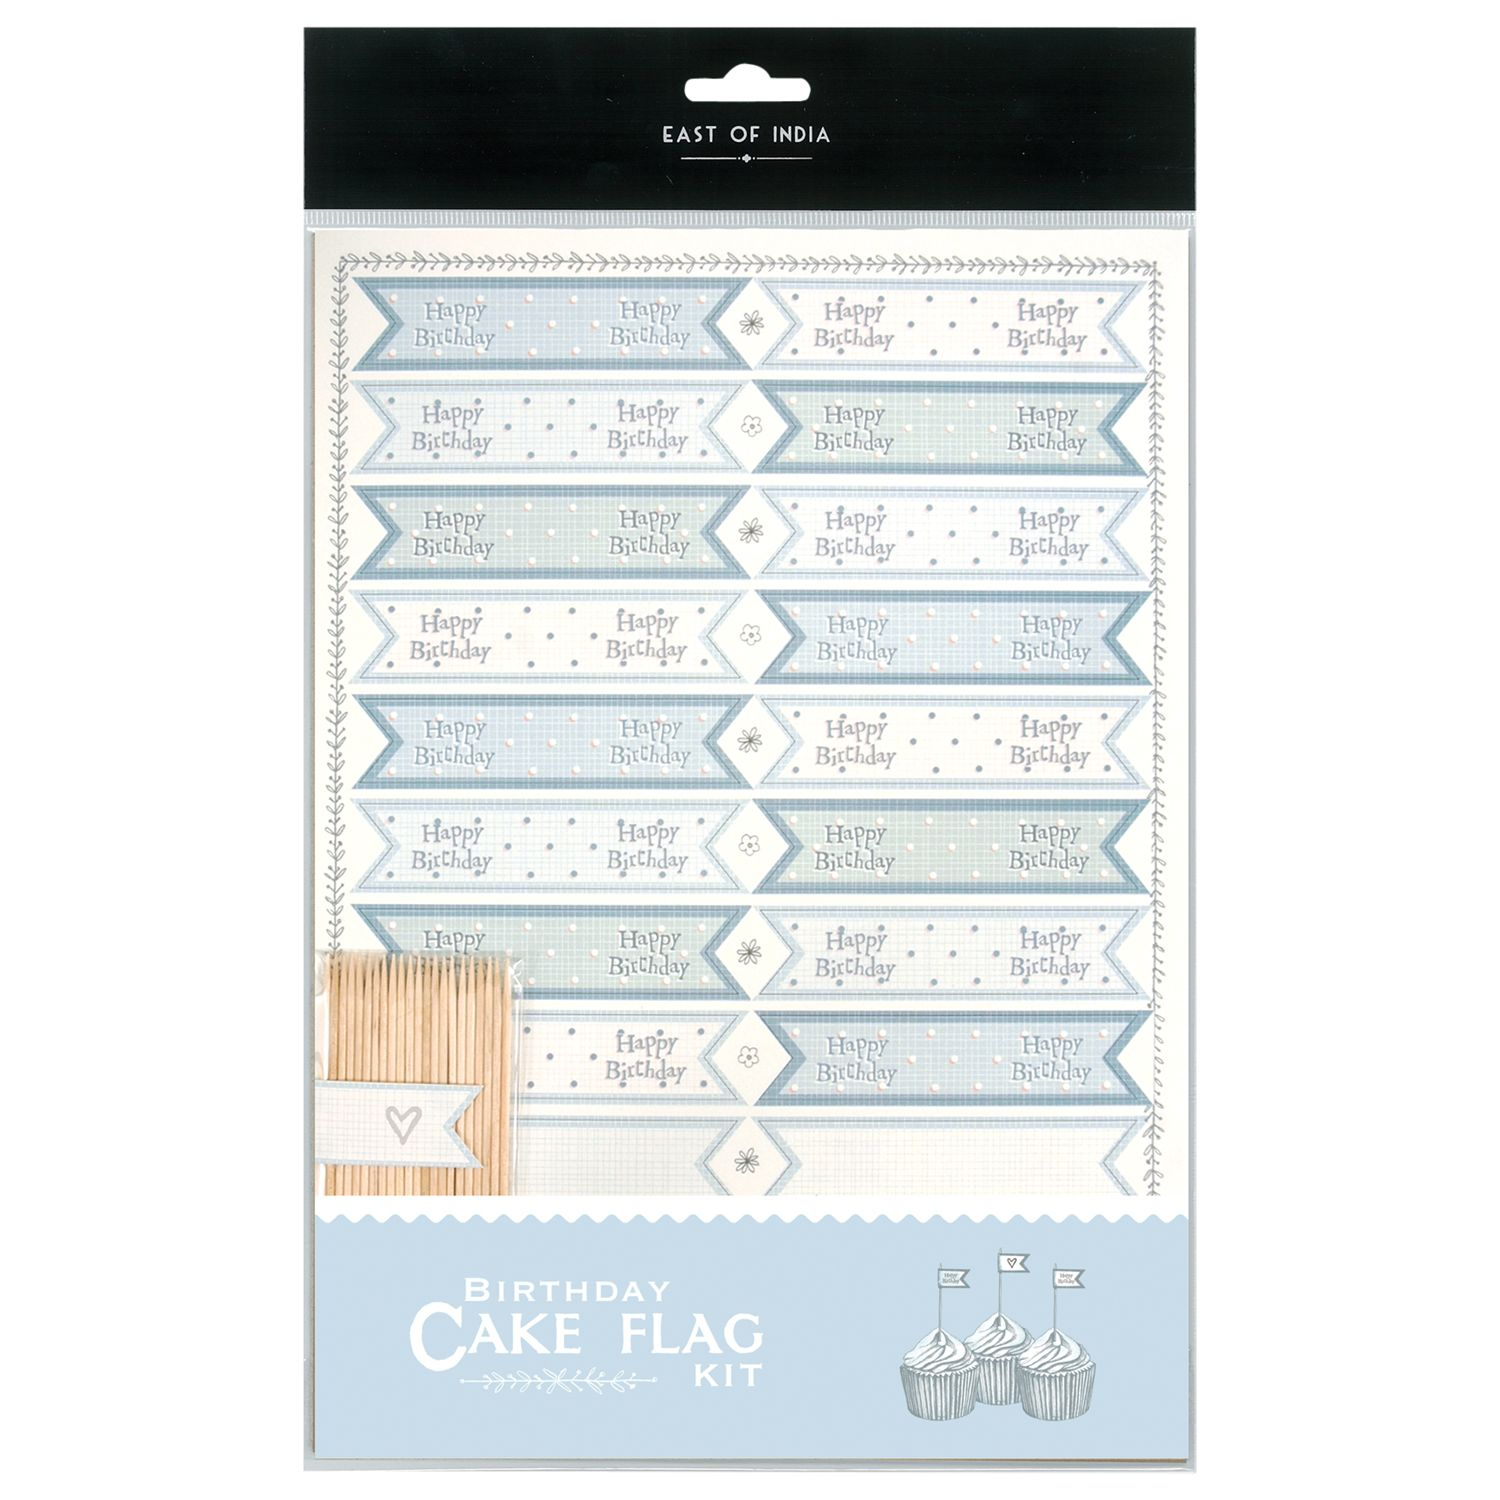 East of India East of India Cupcake Tiny Happy Birthday Flag Kit, Pack of 22